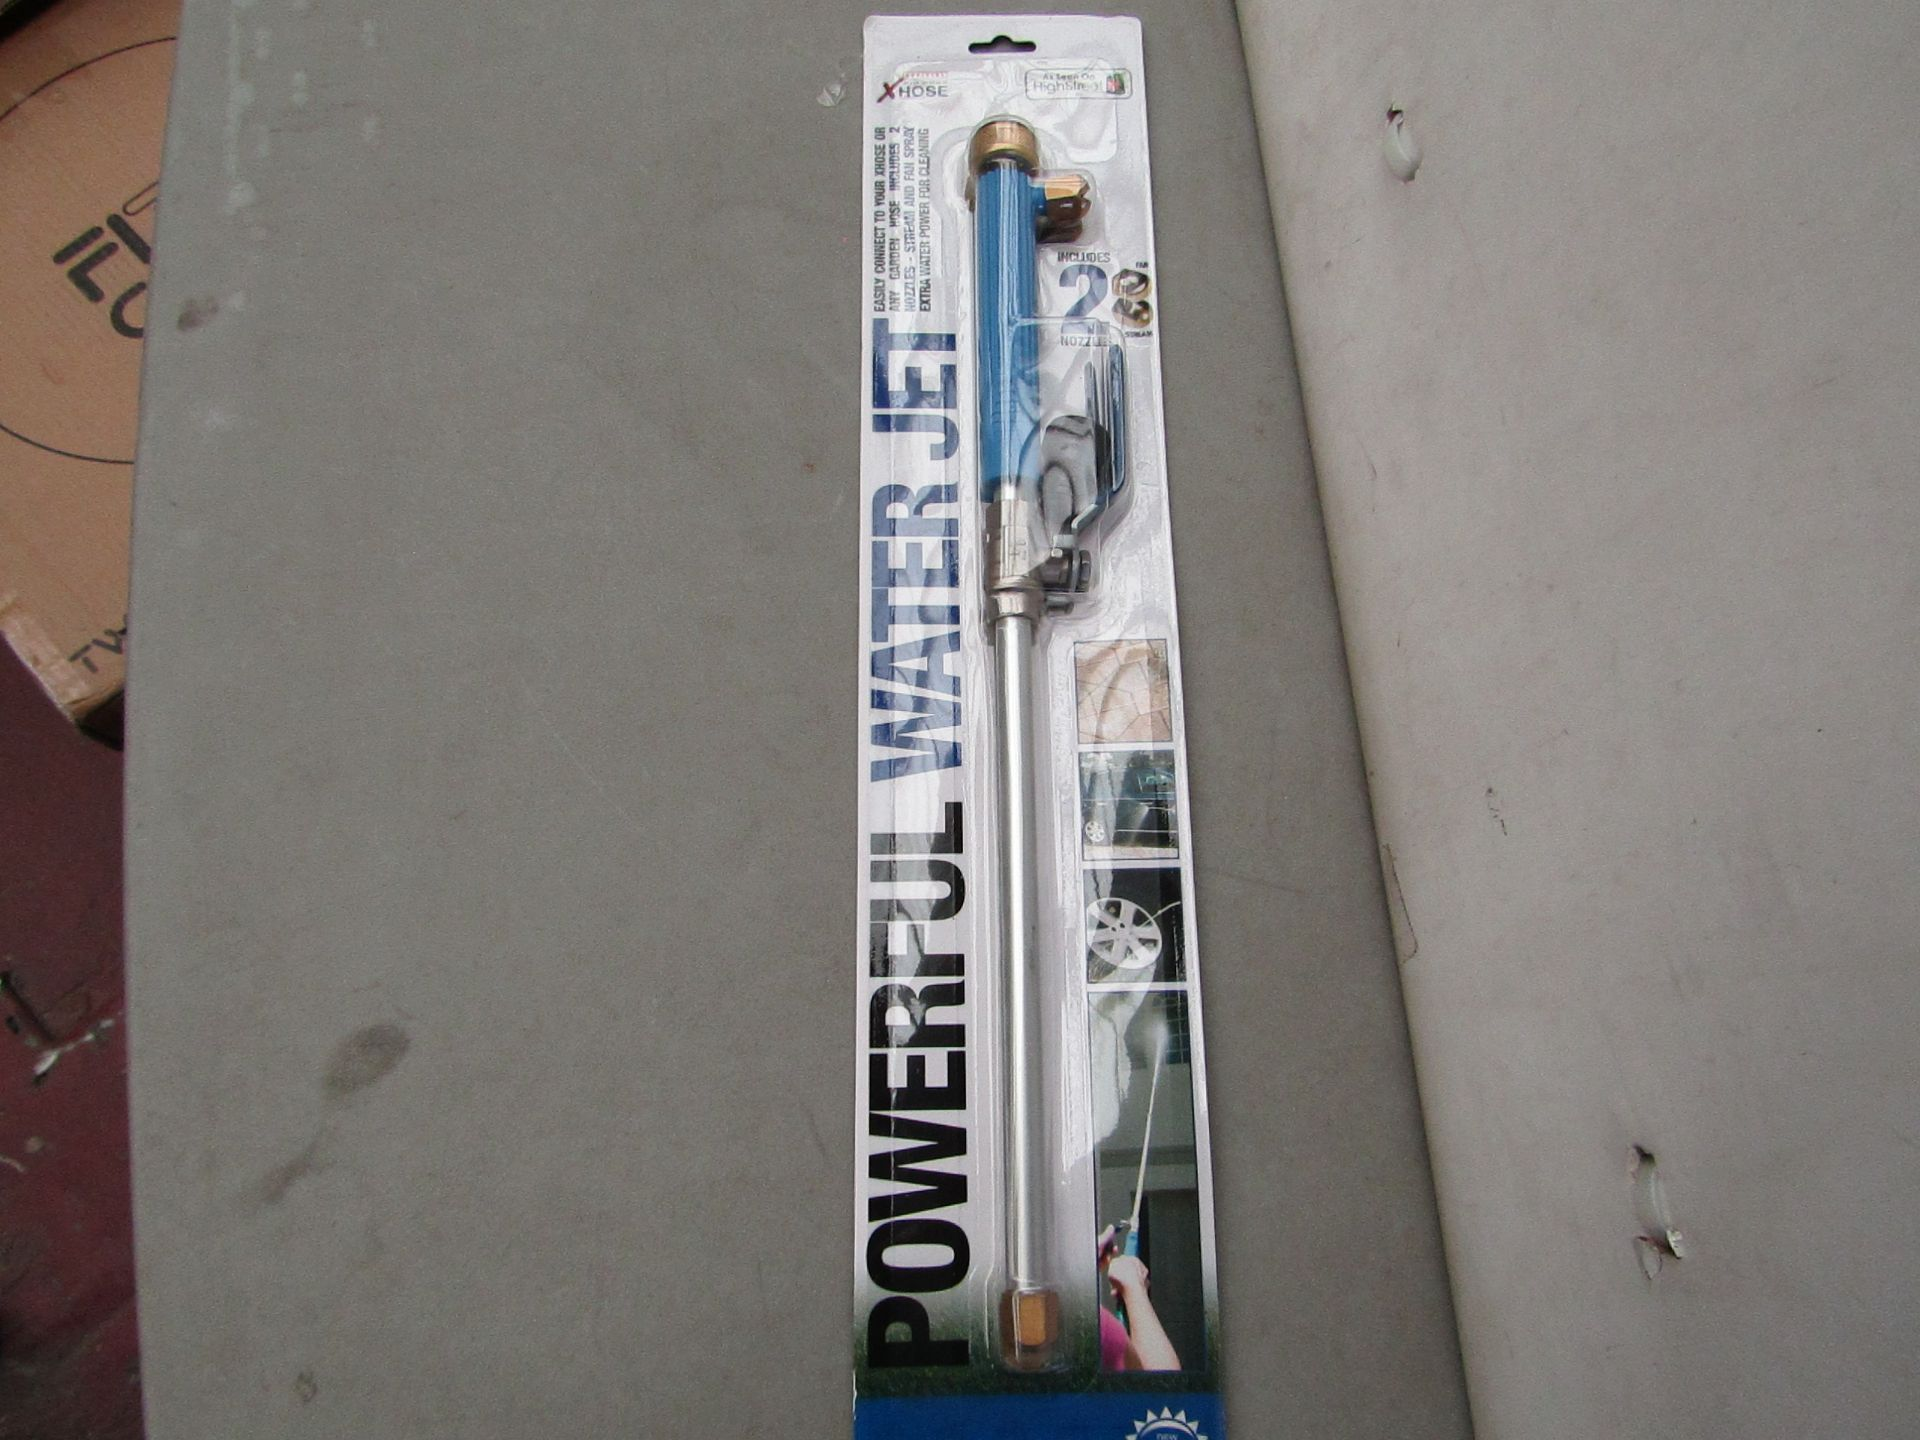 Lot 6 - | 1x | XHOSE POWERFUL WATER JET ACCESSORY | NEW | NO ONLINE RESALE |